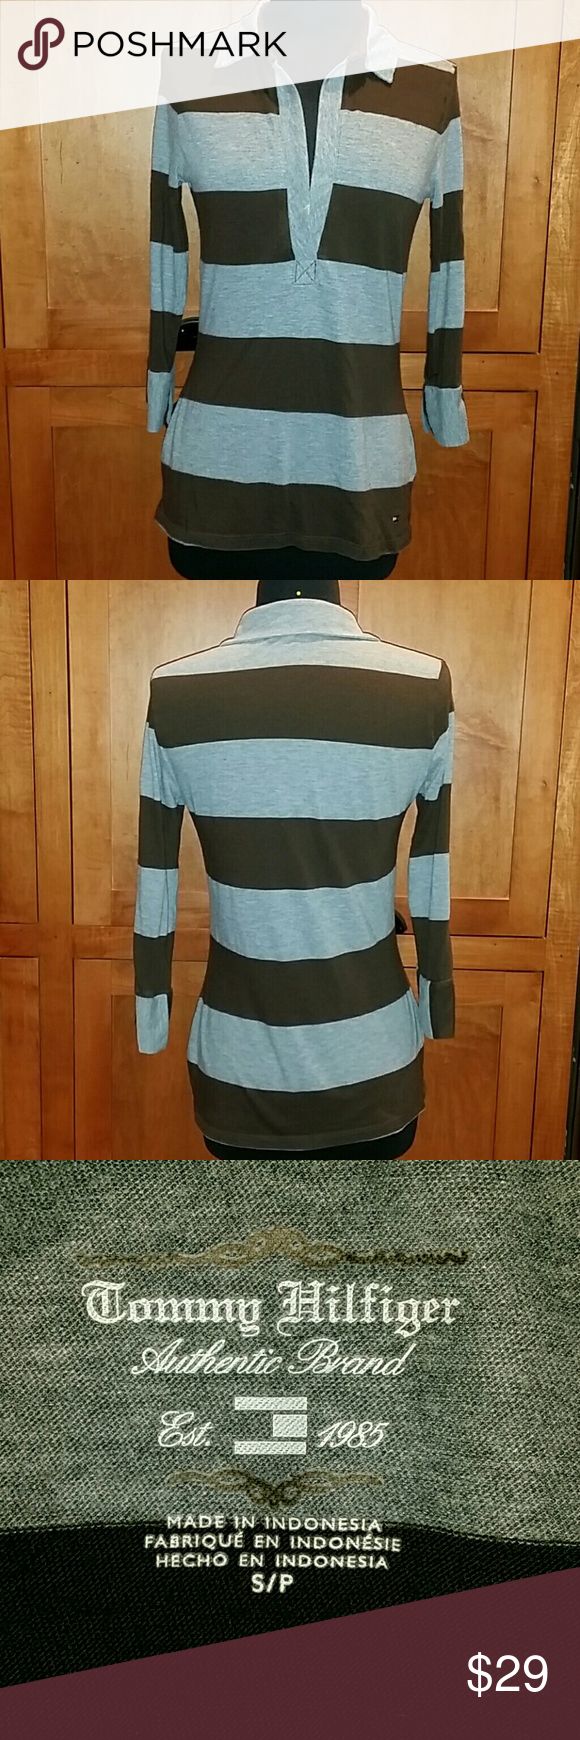 Tommy Hilfiger Striped Knit Blouse S/P, nonsmoking household,  47% Pima Cotton,  34% Polyester,  19% Modal. Gray & Brown Striped Polo. Tommy Hilfiger Tops